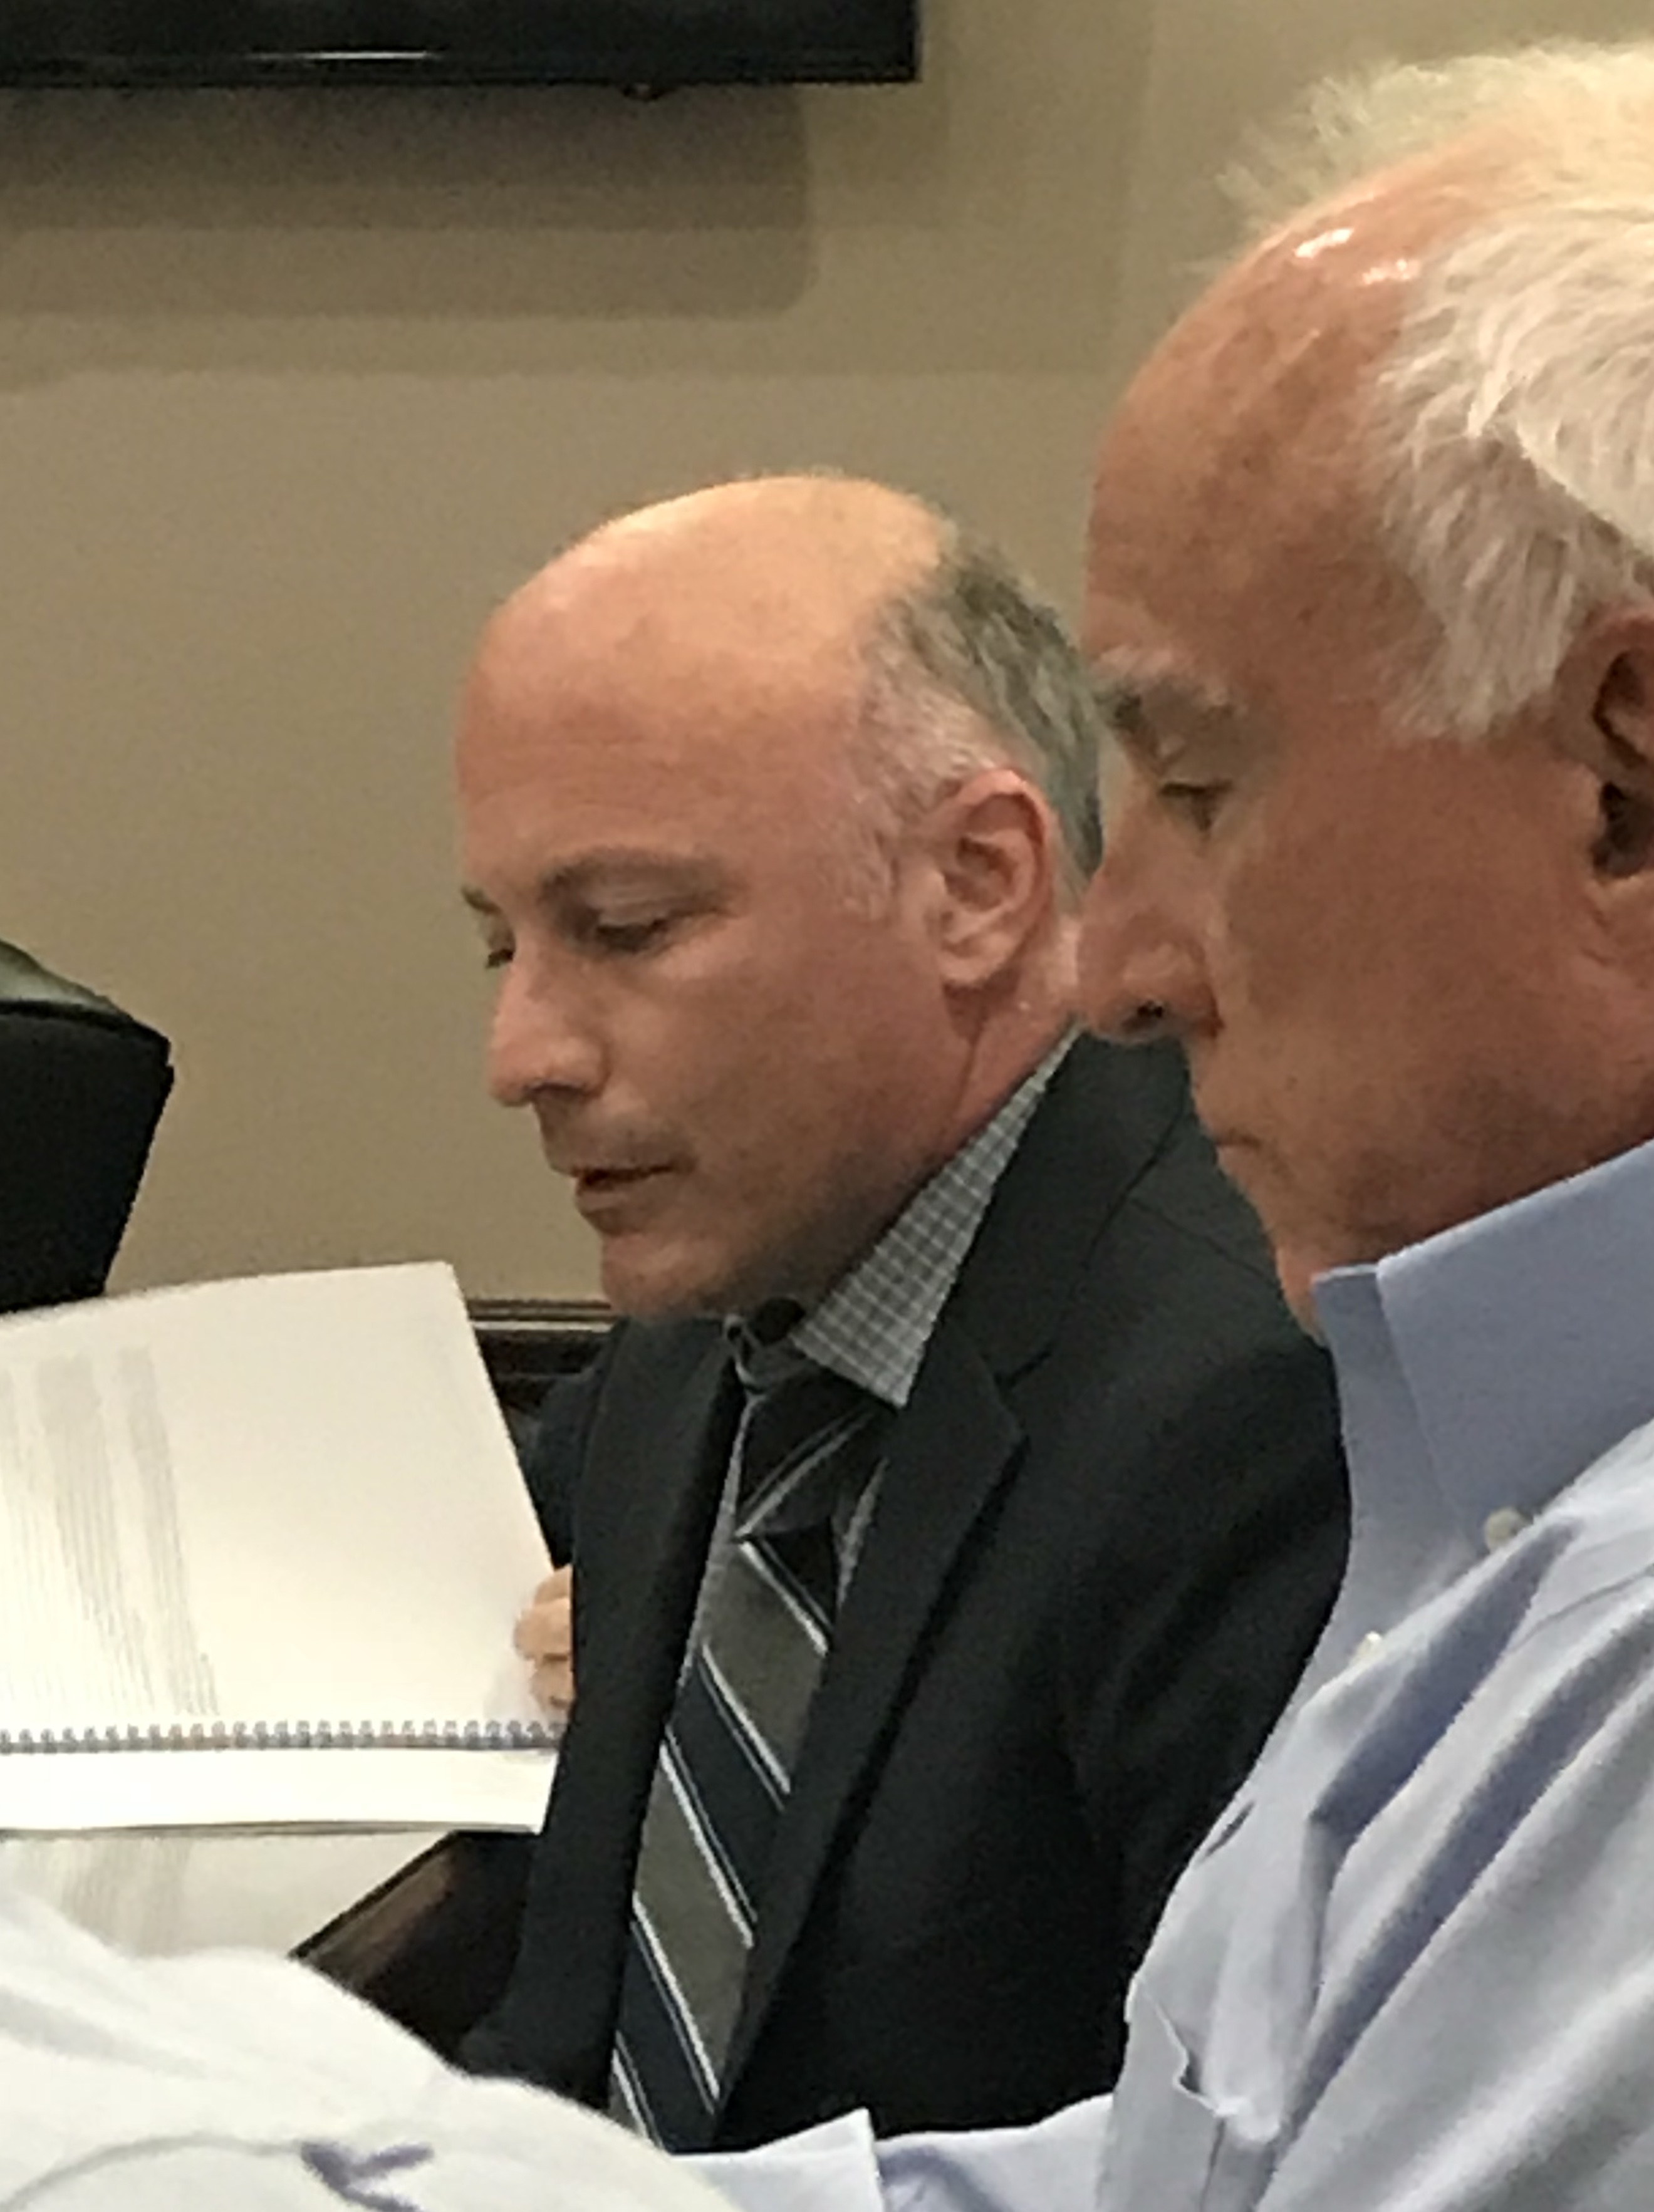 Mr Jeff Amrose (pictured left), Board Actuary from GRS Retirement Consultiing presented the West Palm Beach Police Pension Fund Actuarial Valuation Report as of September 30, 2018 (for funding in fiscal year 2019/2020).